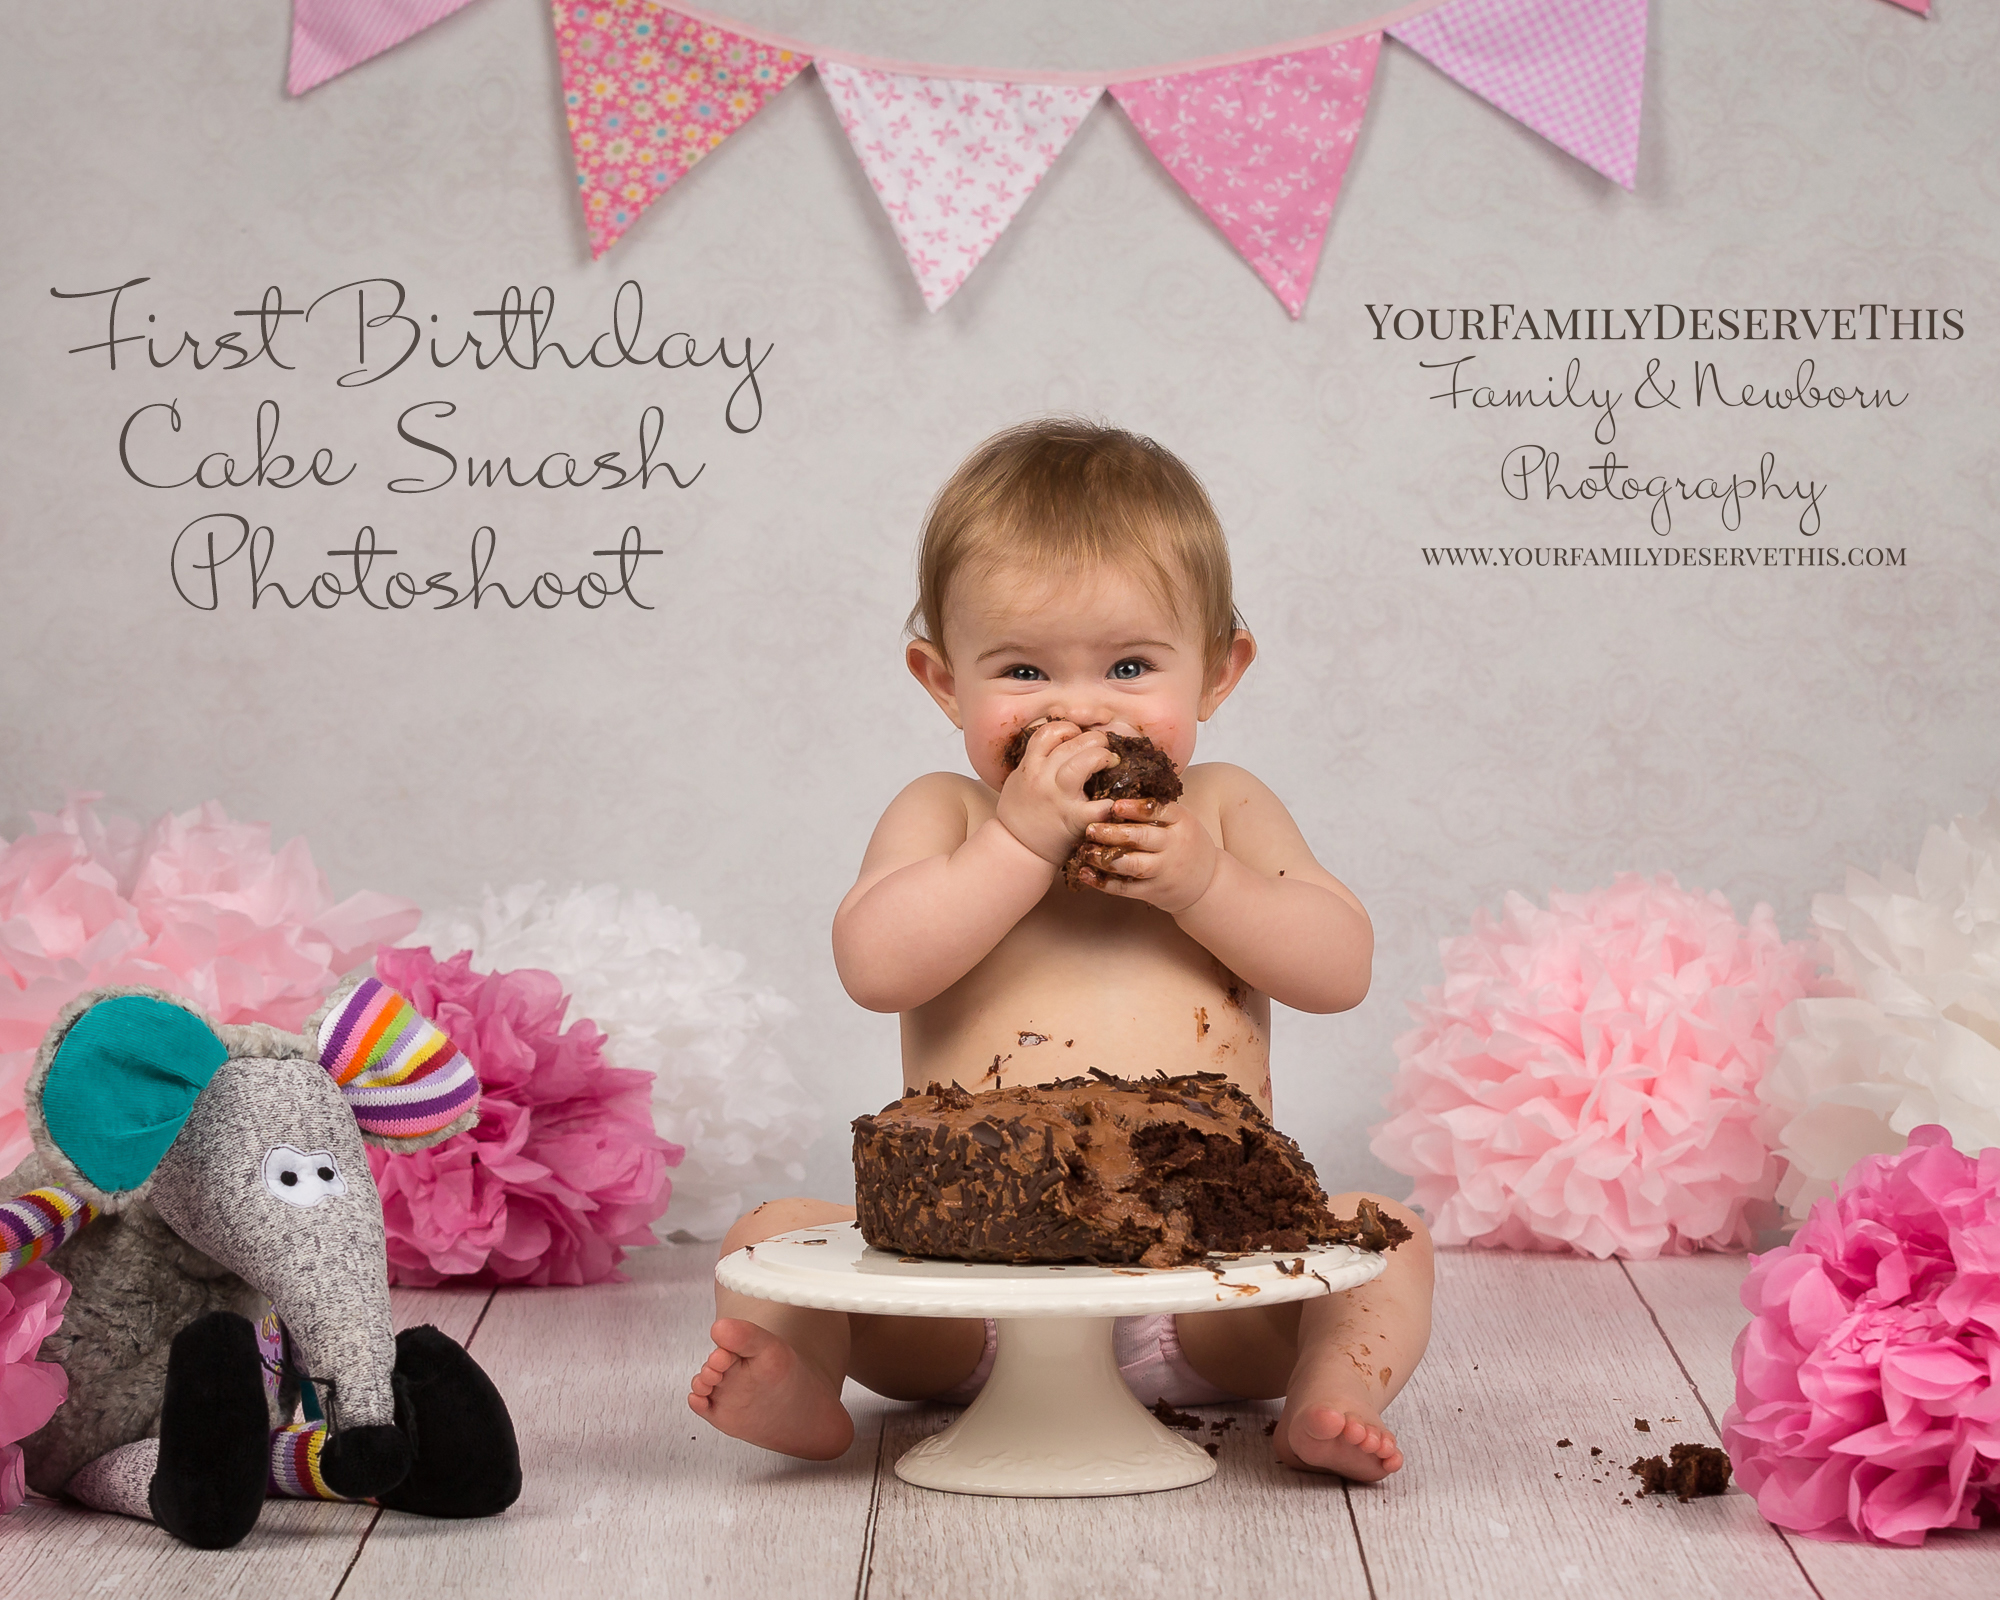 Choose to include a Cake Smash at your baby's 1st Birthday Photoshoot.